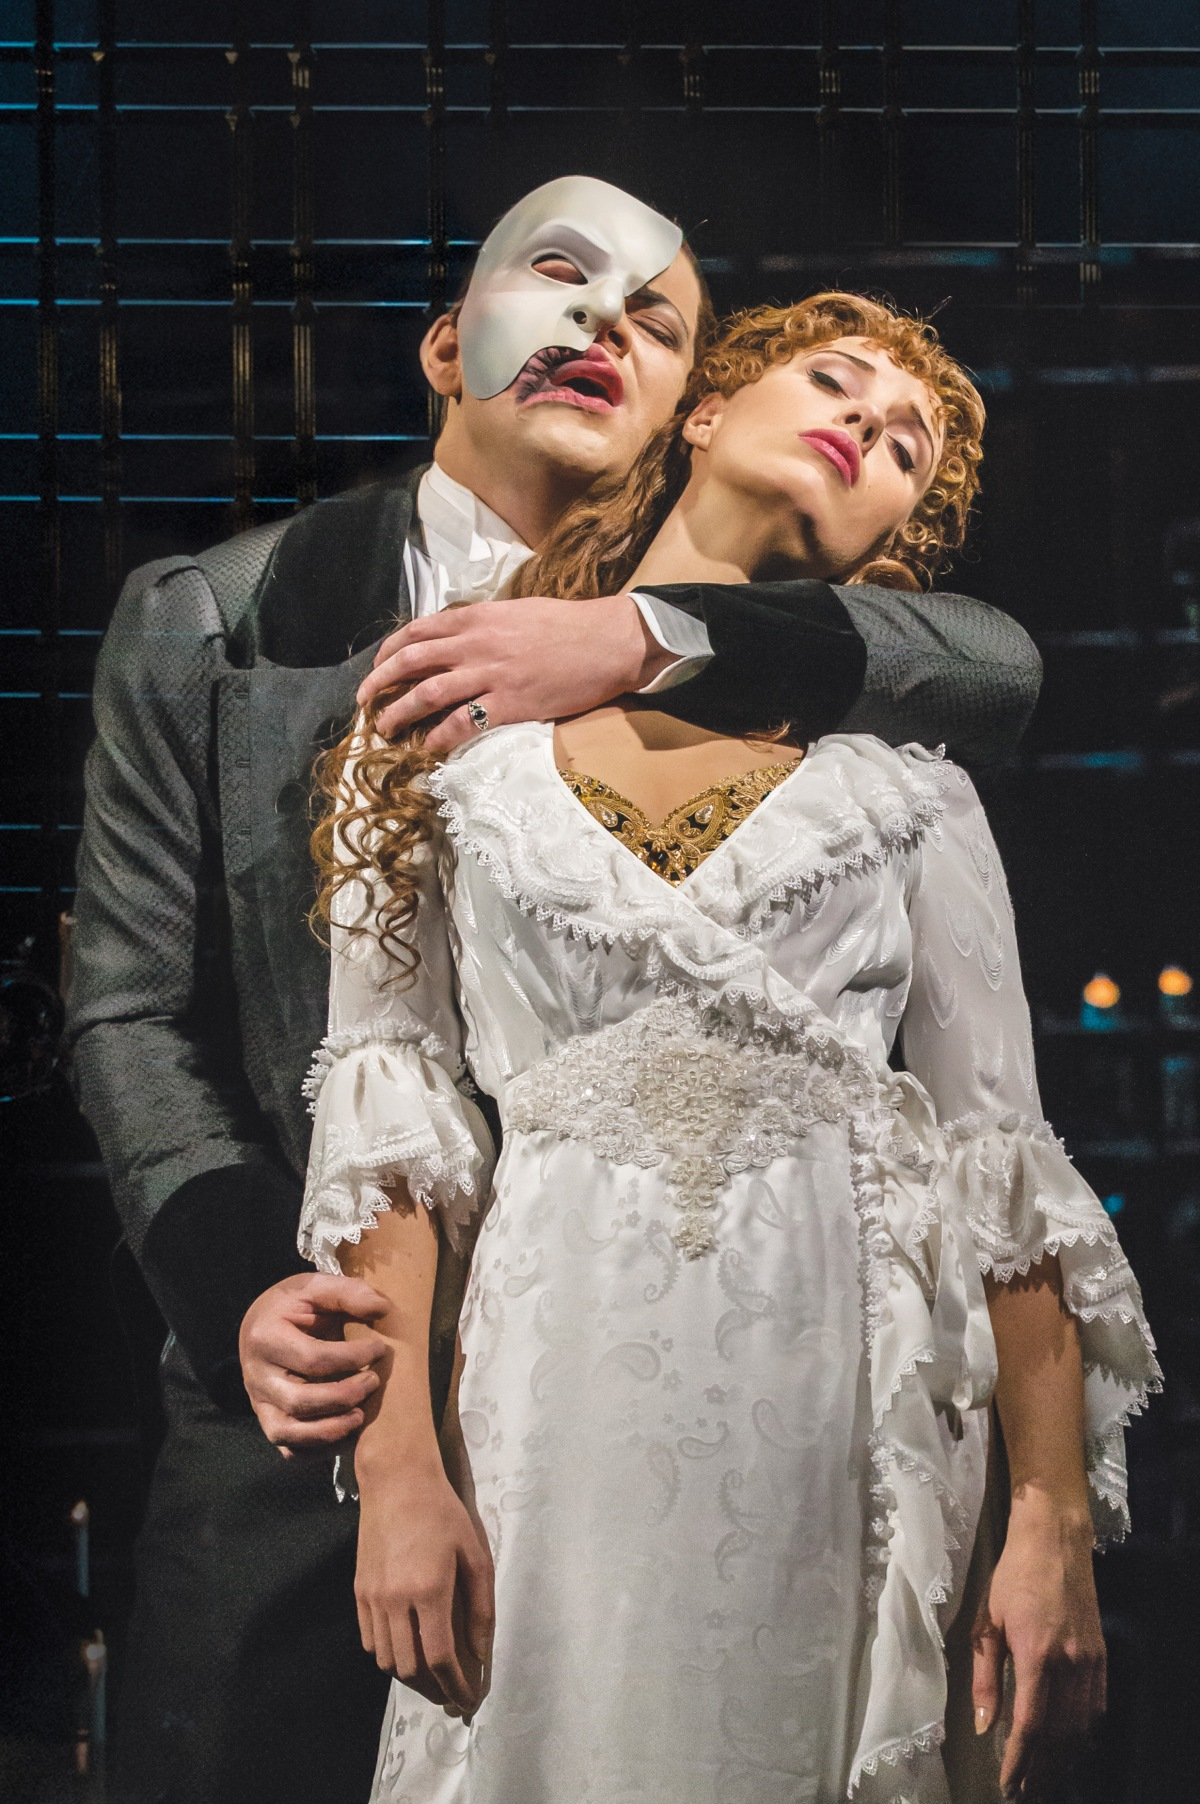 THE PHANTOM OF THE OPERA. Ben Forster as 'The Phantom' and Celinde Schoenmaker as 'Christine Daaé'.  Photo credit Johan Persson.jpg